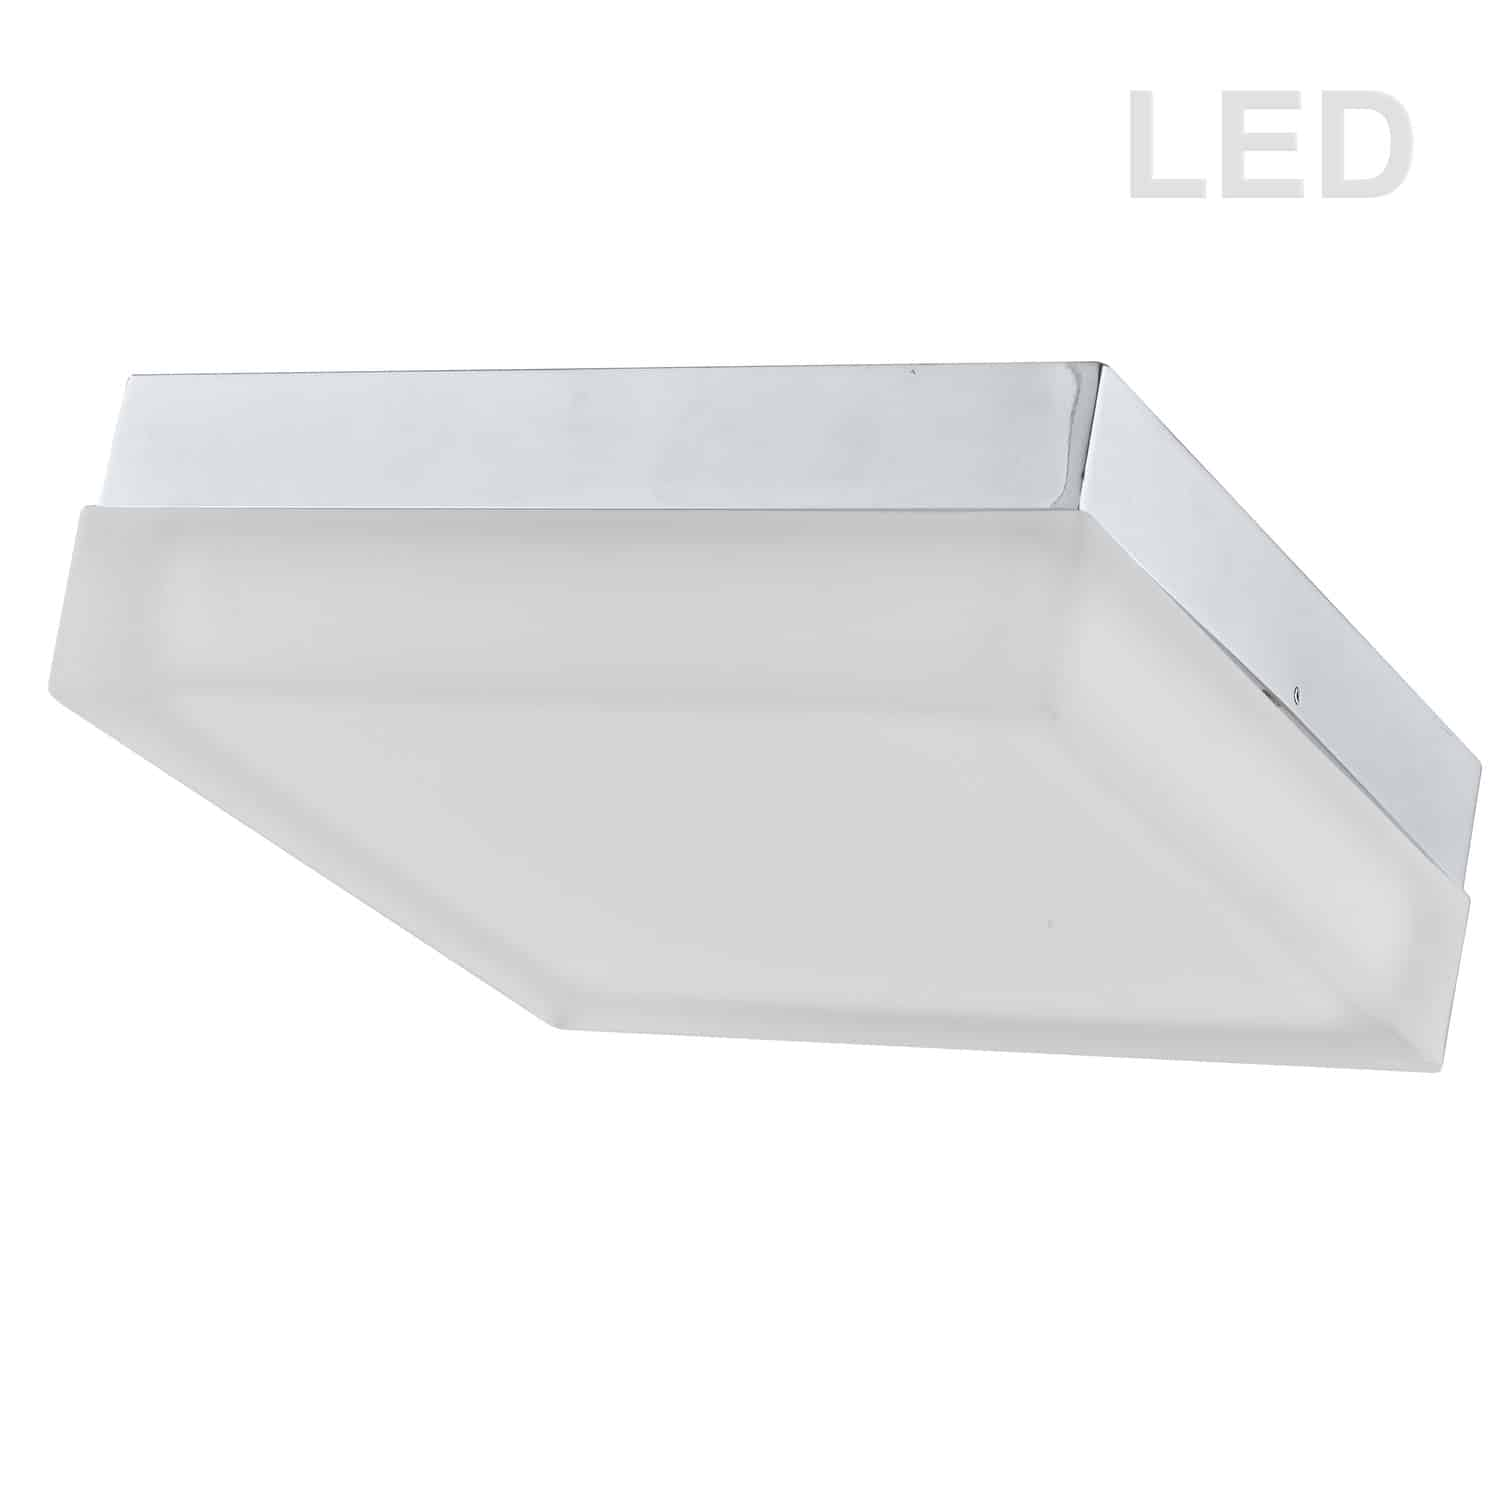 20W LED Flushmount, Satin Nickel Finish